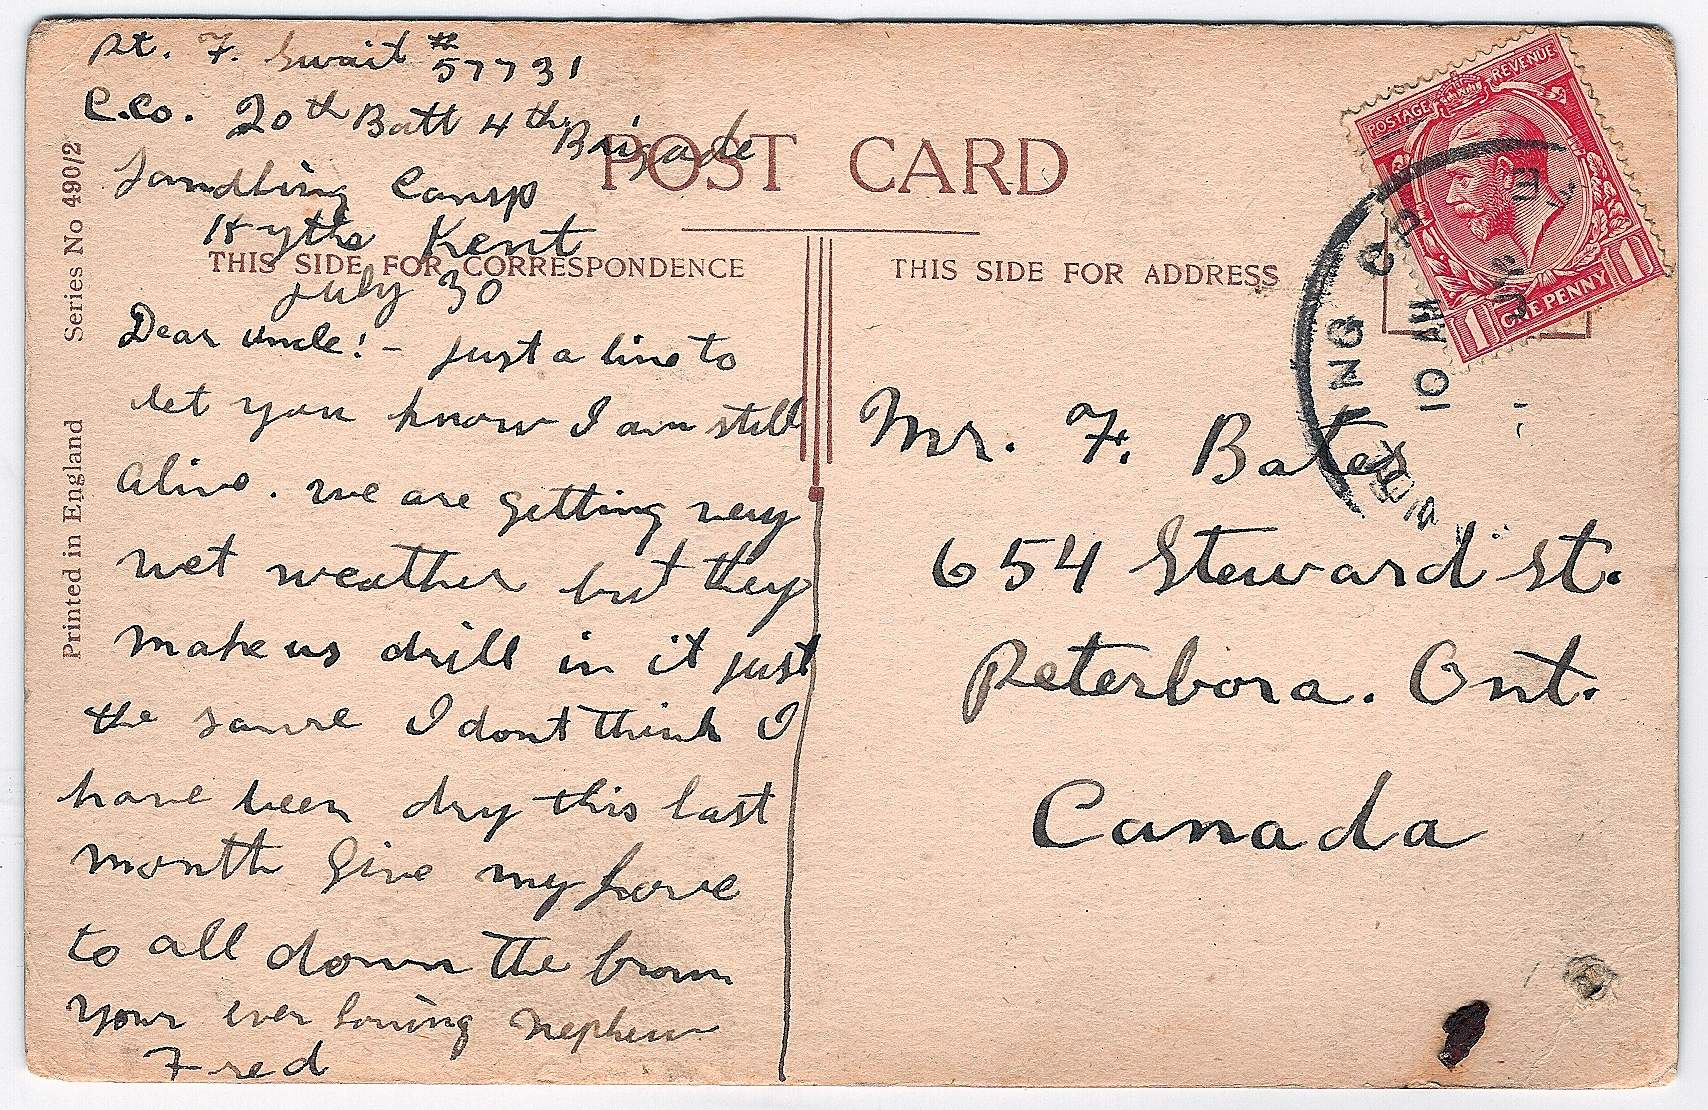 Post Card– Postcard sent by Frederick Swait.